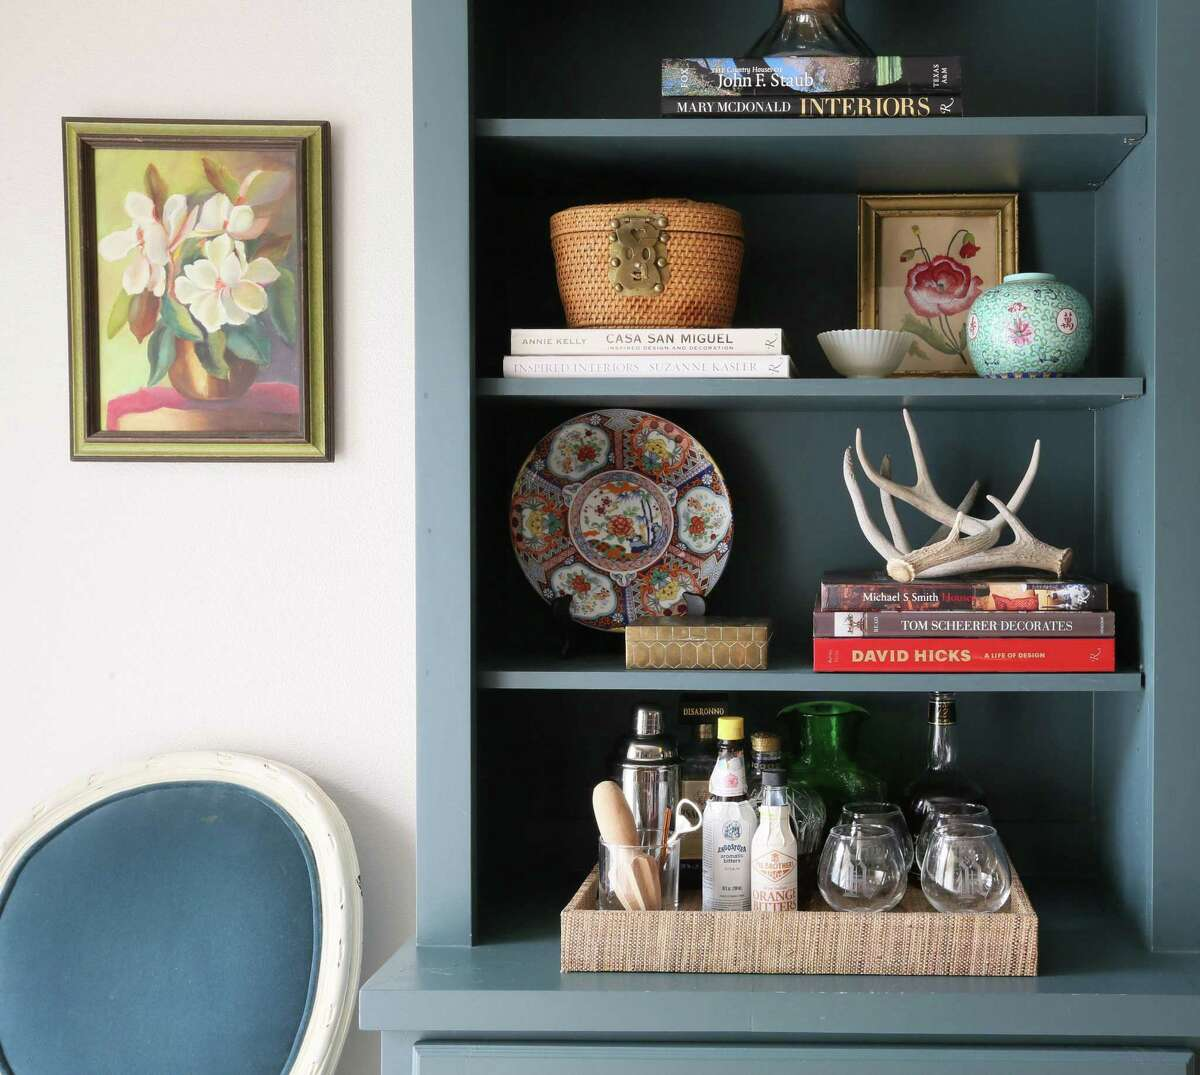 Porcelain with Asian motifs adds a touch of chinoiserie to these shelves. Design by Lindsey Herod Interiors.